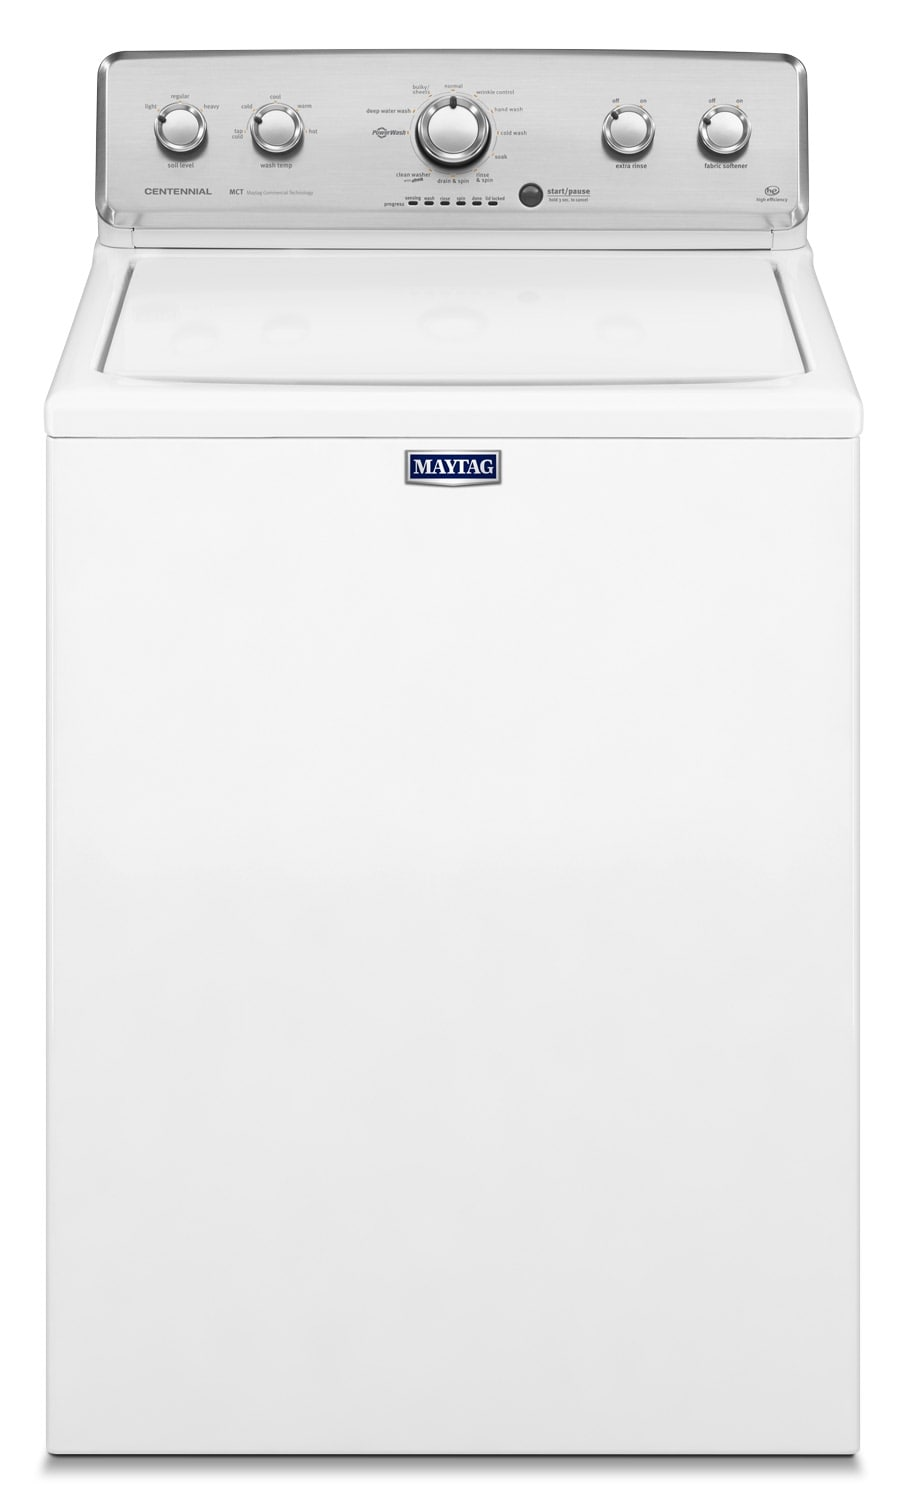 Washers and Dryers - Maytag White Top-Load Washer (5.0 Cu. Ft.) - MVWC555DW